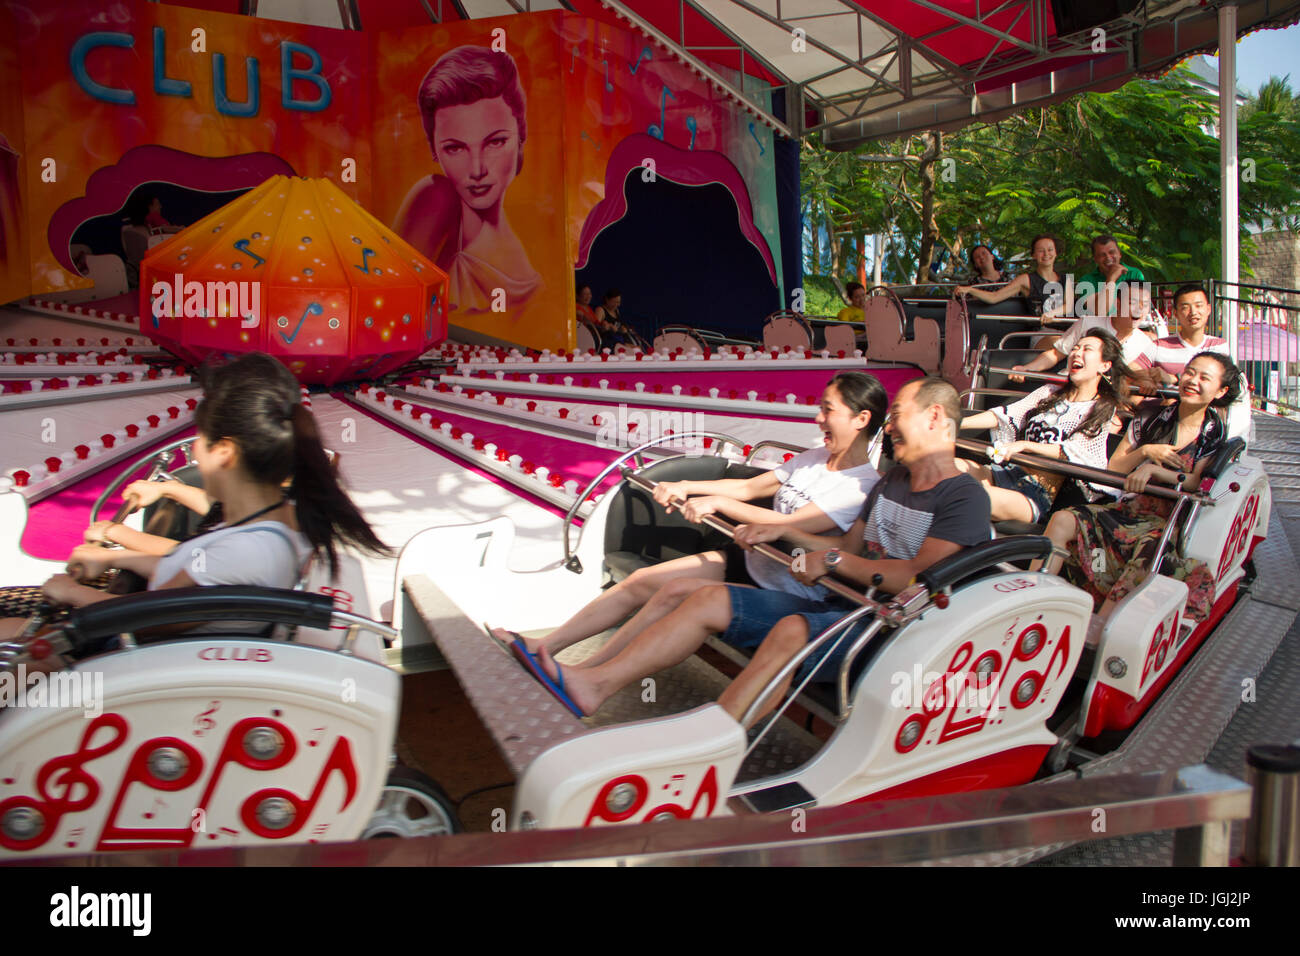 VINPEARL RESORT, NHA TRANG, VIETNAM, MARCH 5, 2016 - Group of people on the amusement ride. - Stock Image